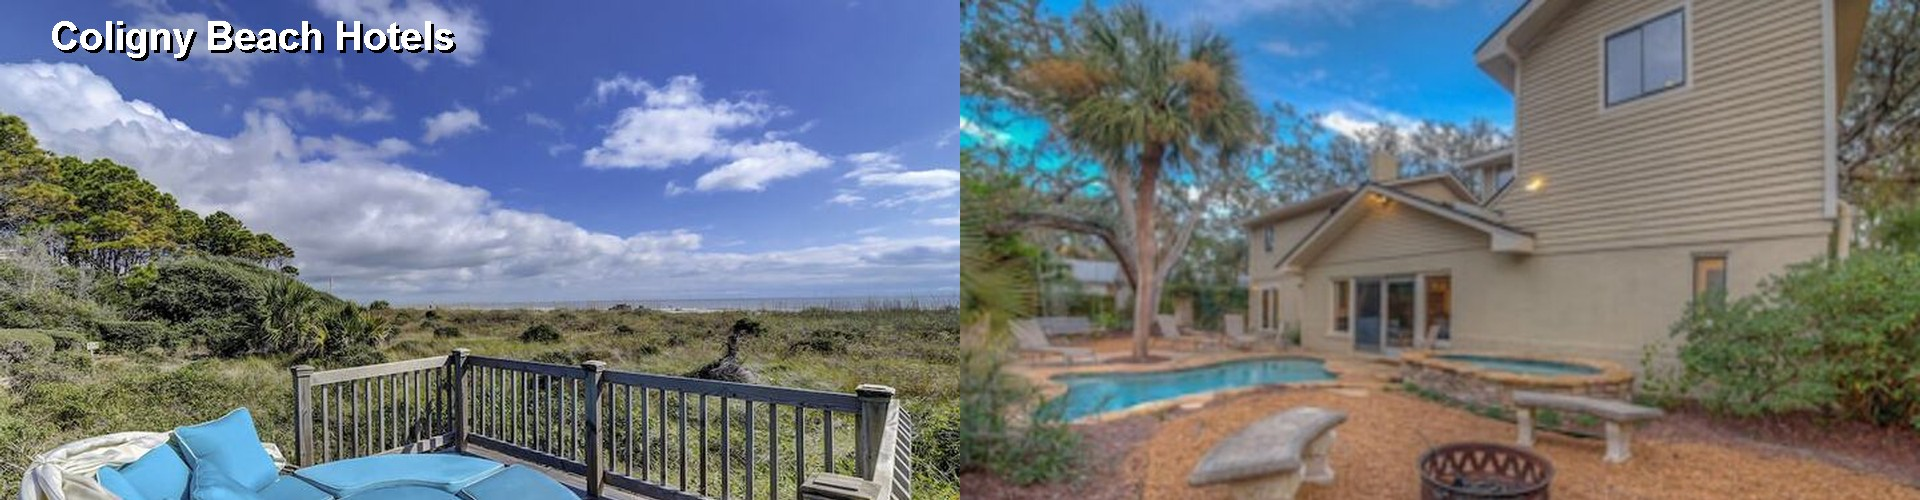 5 Best Hotels near Coligny Beach